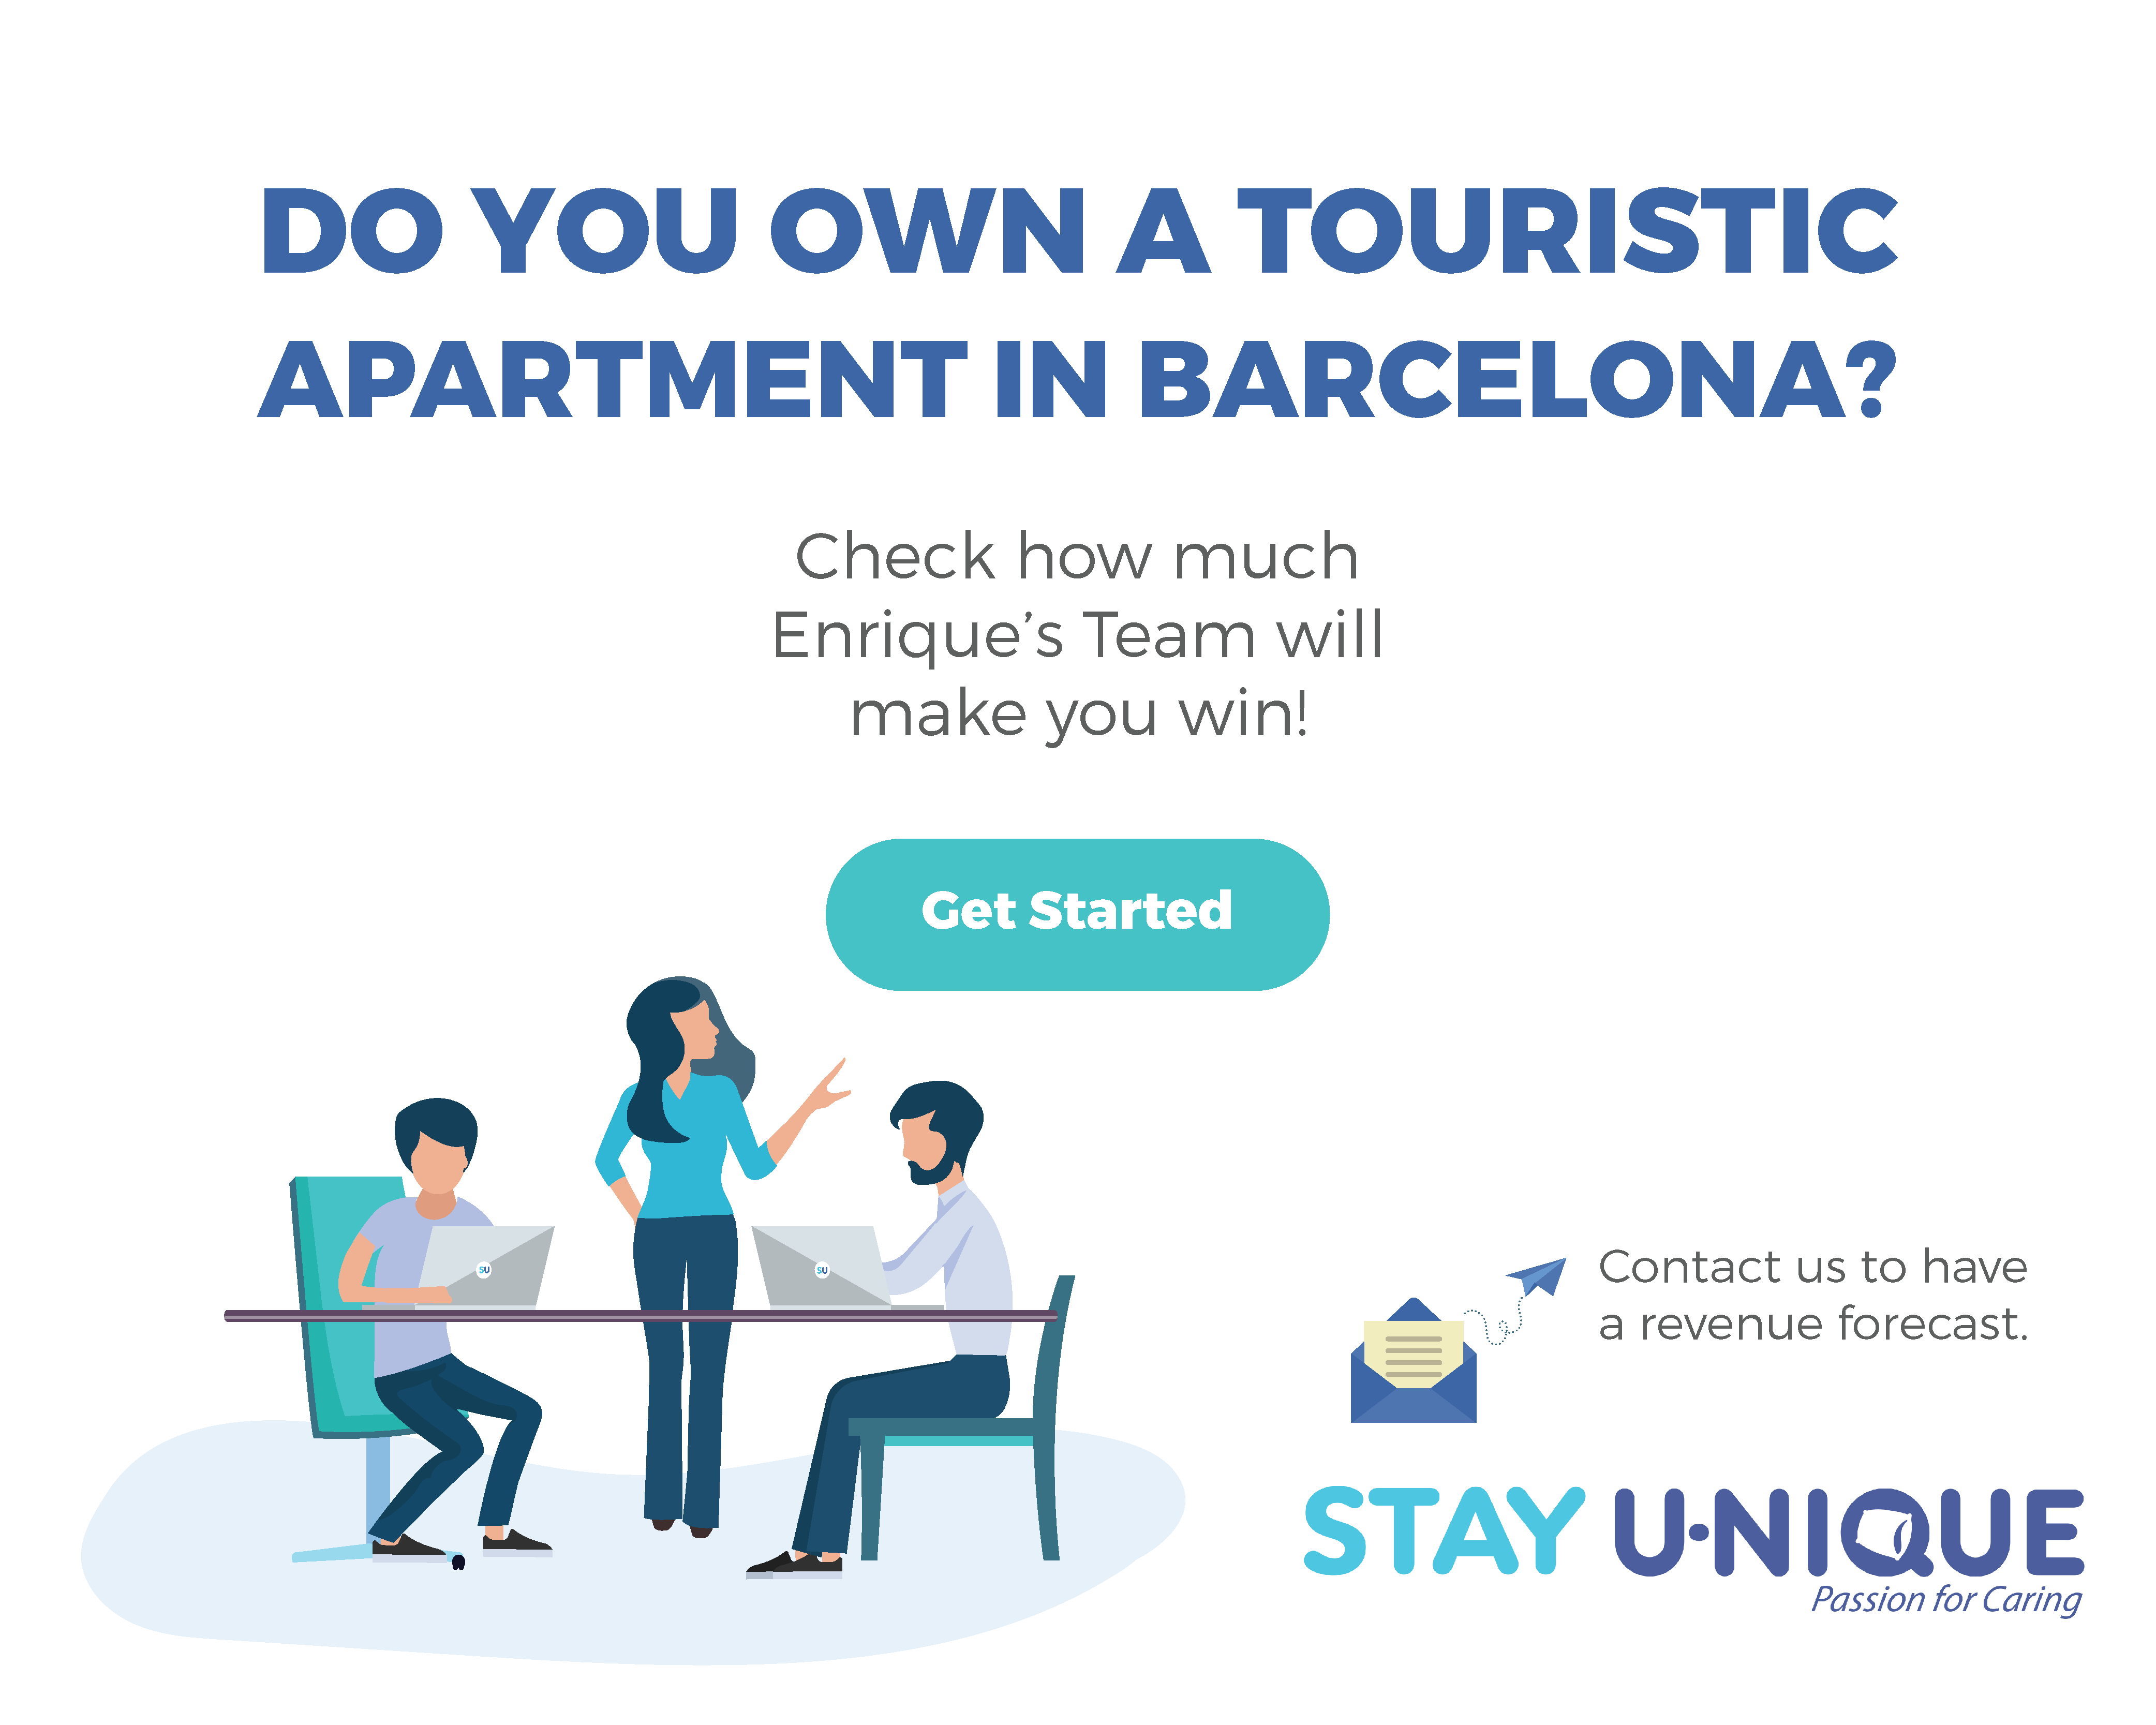 Do you own a touristic apartment in Barcelona?